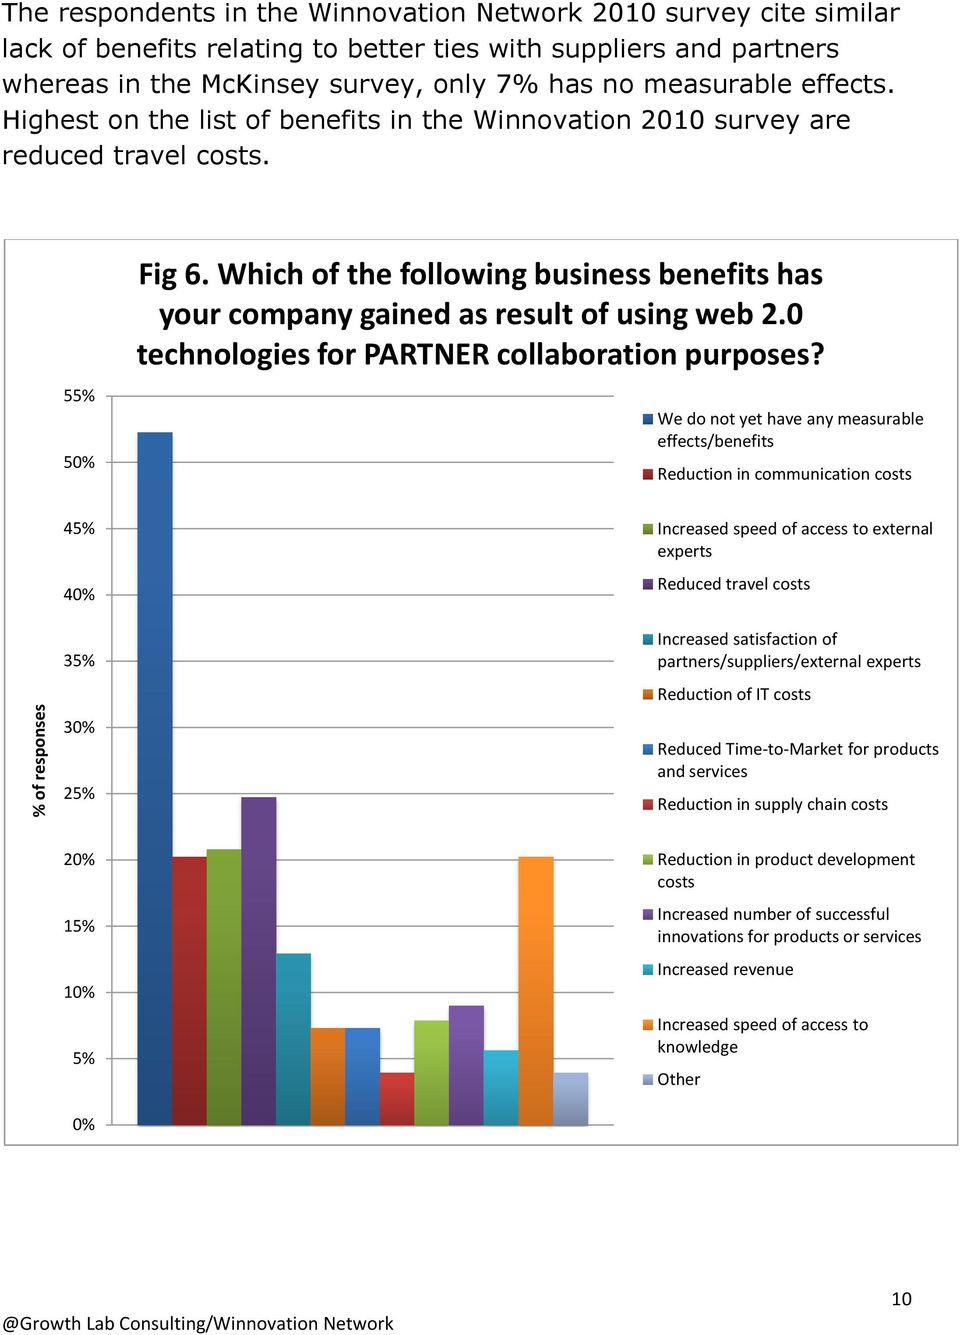 Which of the following business benefits has your company gained as result of using web 2.0 technologies for PARTNER collaboration purposes?